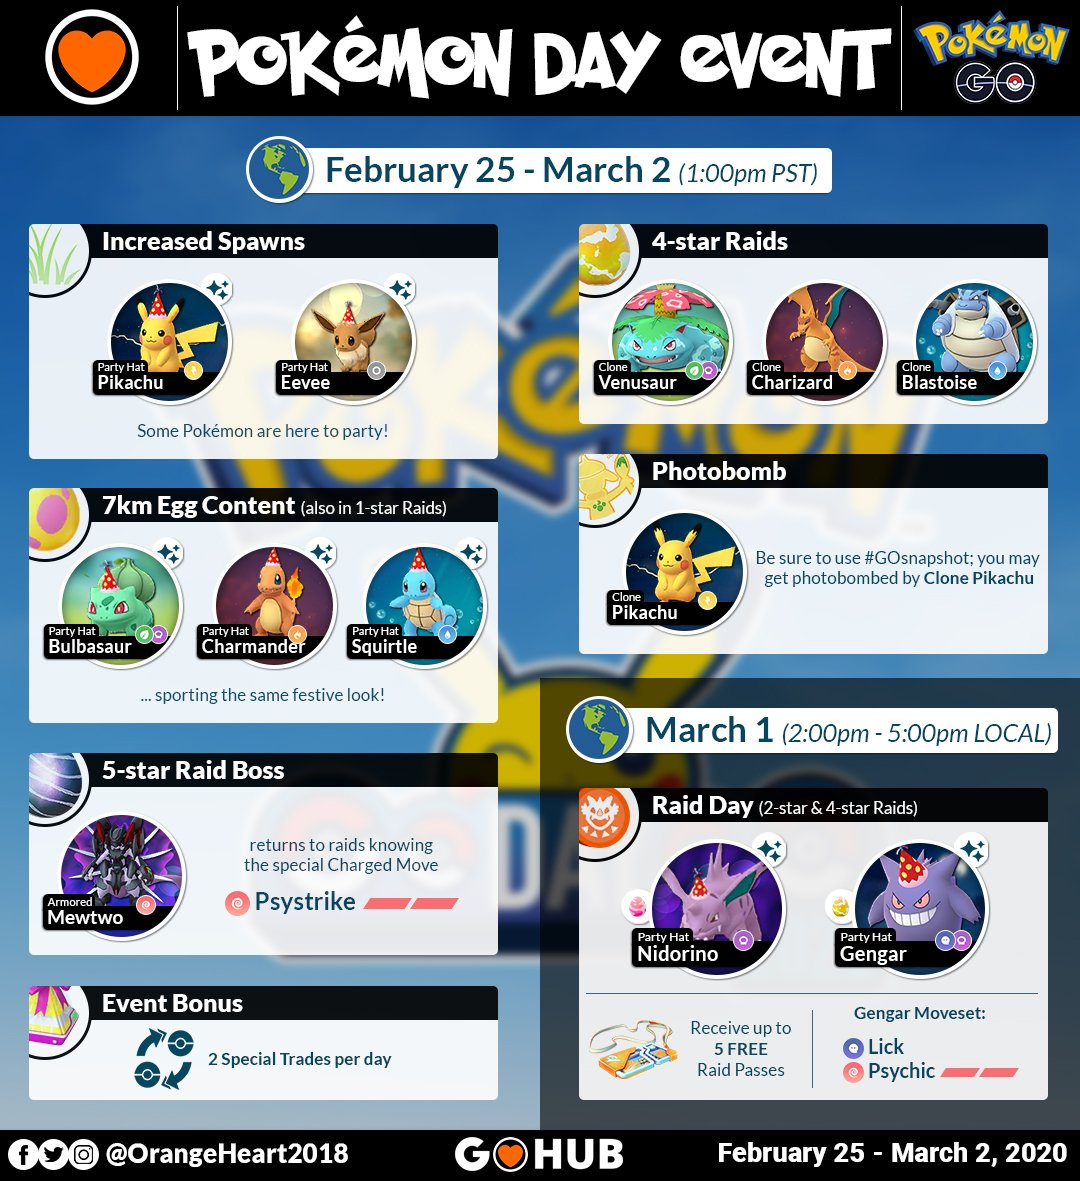 Perfect Halloween Event Pikachu Iv 2020 Pokémon Day Raid Week Guide: Attack of the Clones | Pokemon GO Hub